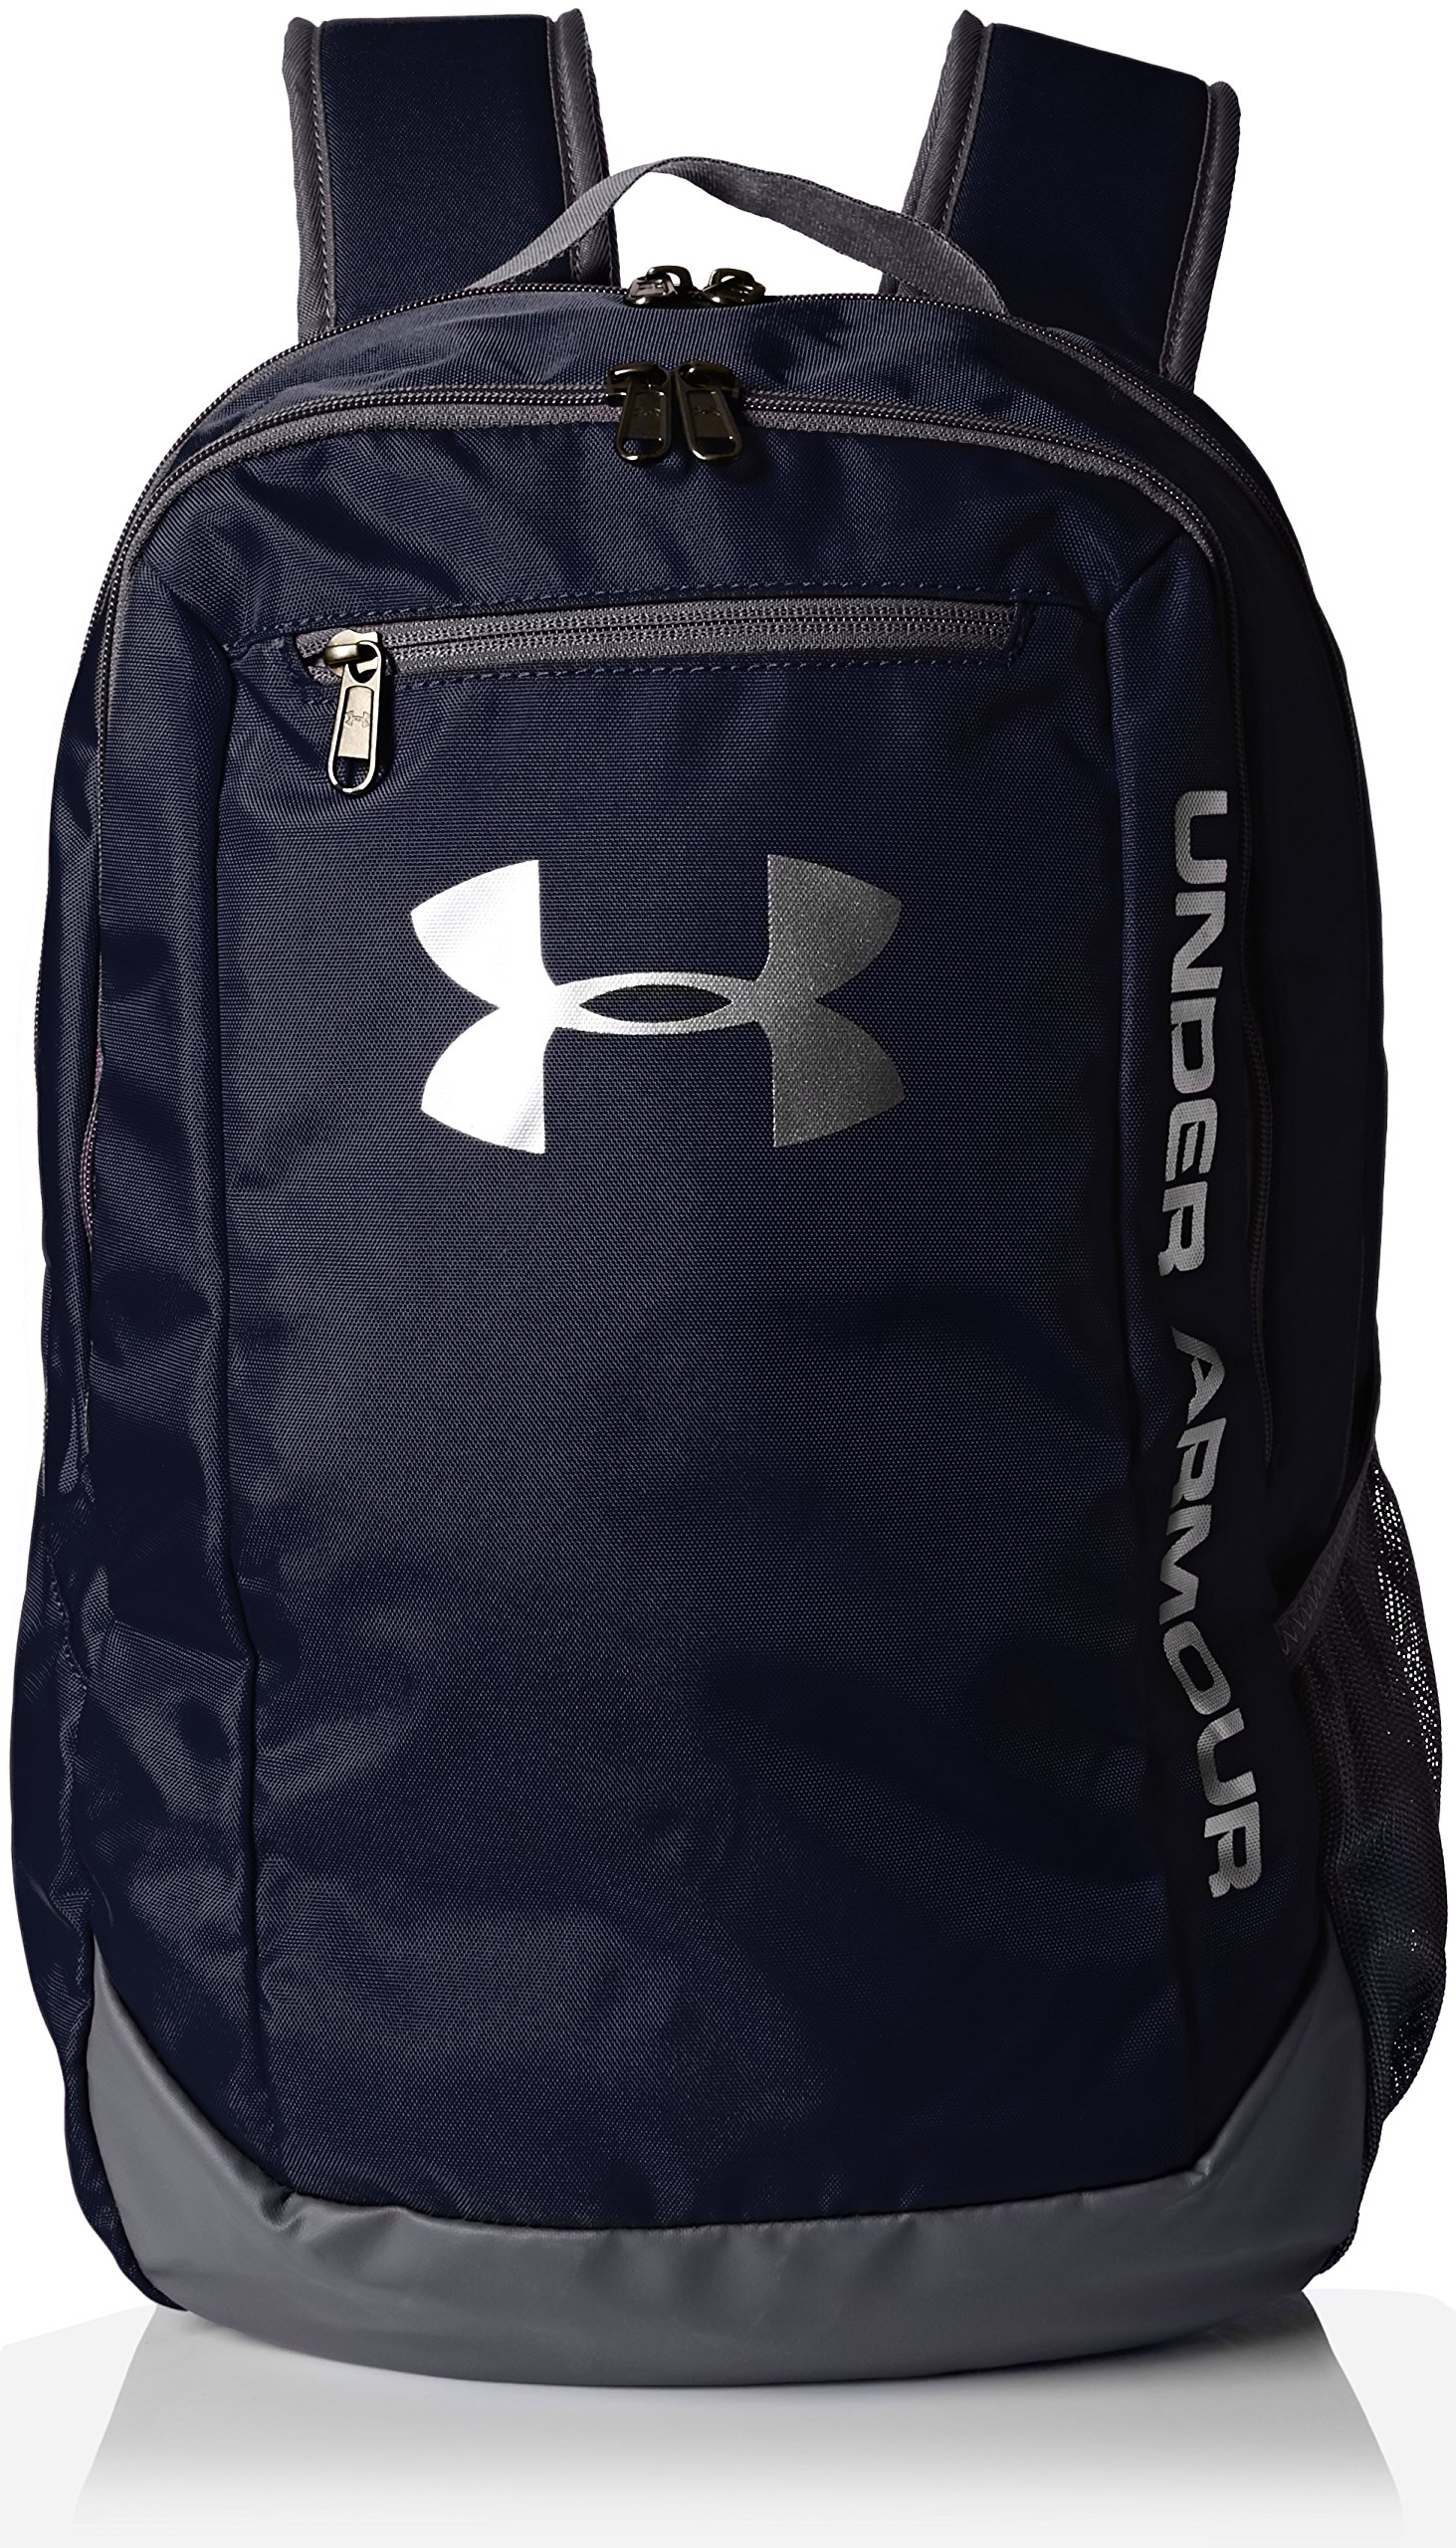 Under Armour Men's Hustle LD Water Resistant Backpack Laptop, Midnight Navy (410), One Size by Under Armour